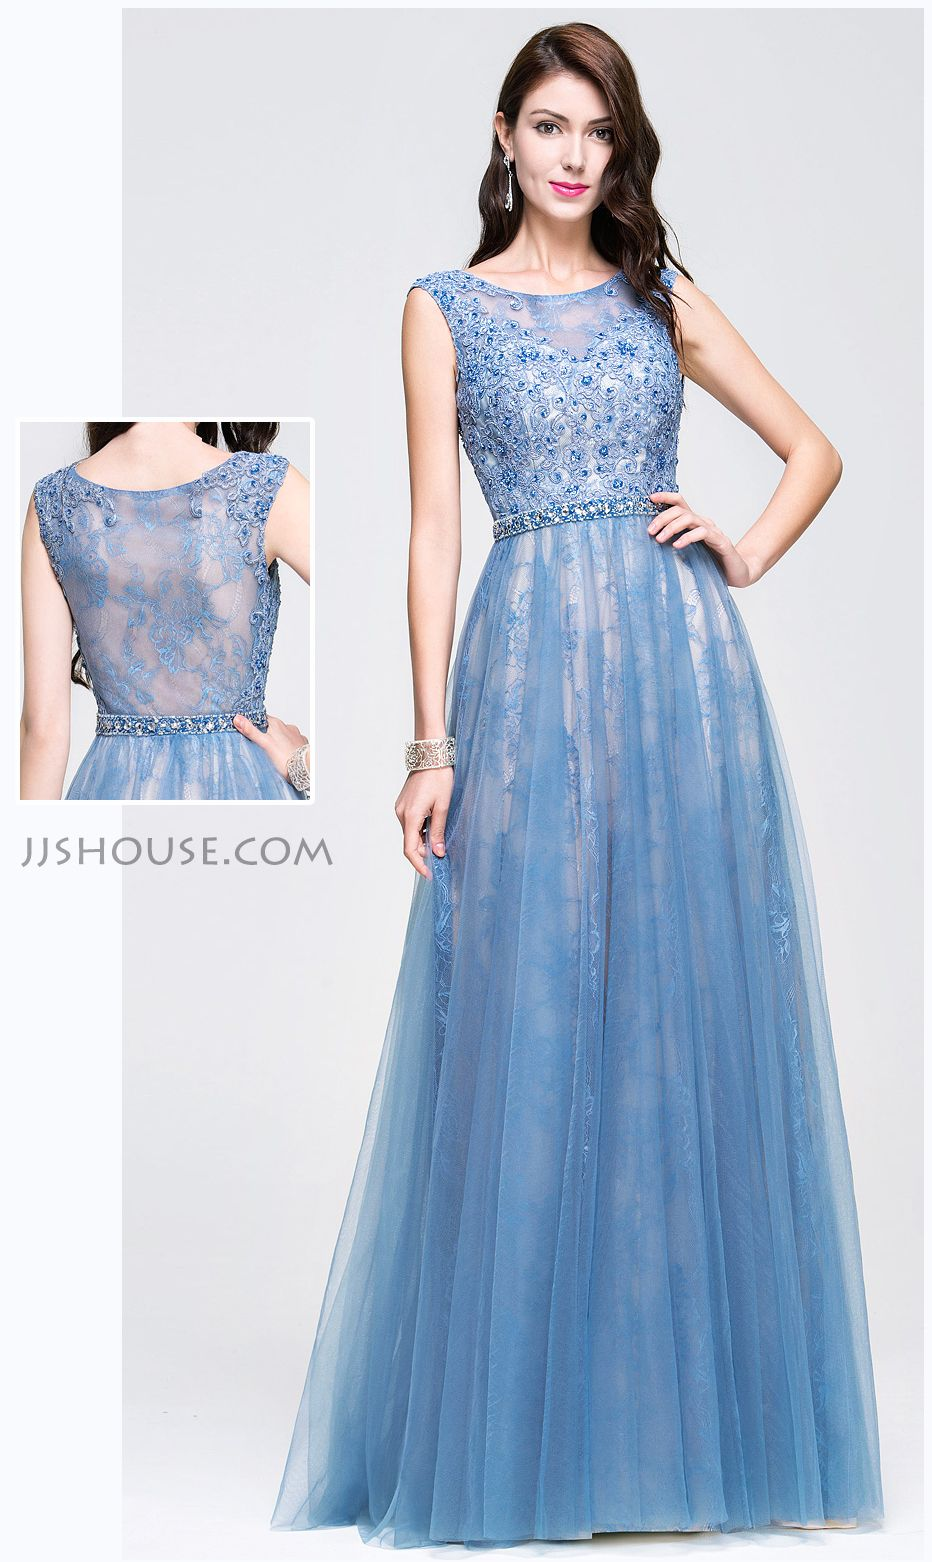 Dreamy and romantic, this tulle Prom dress will steal the spotlight ...